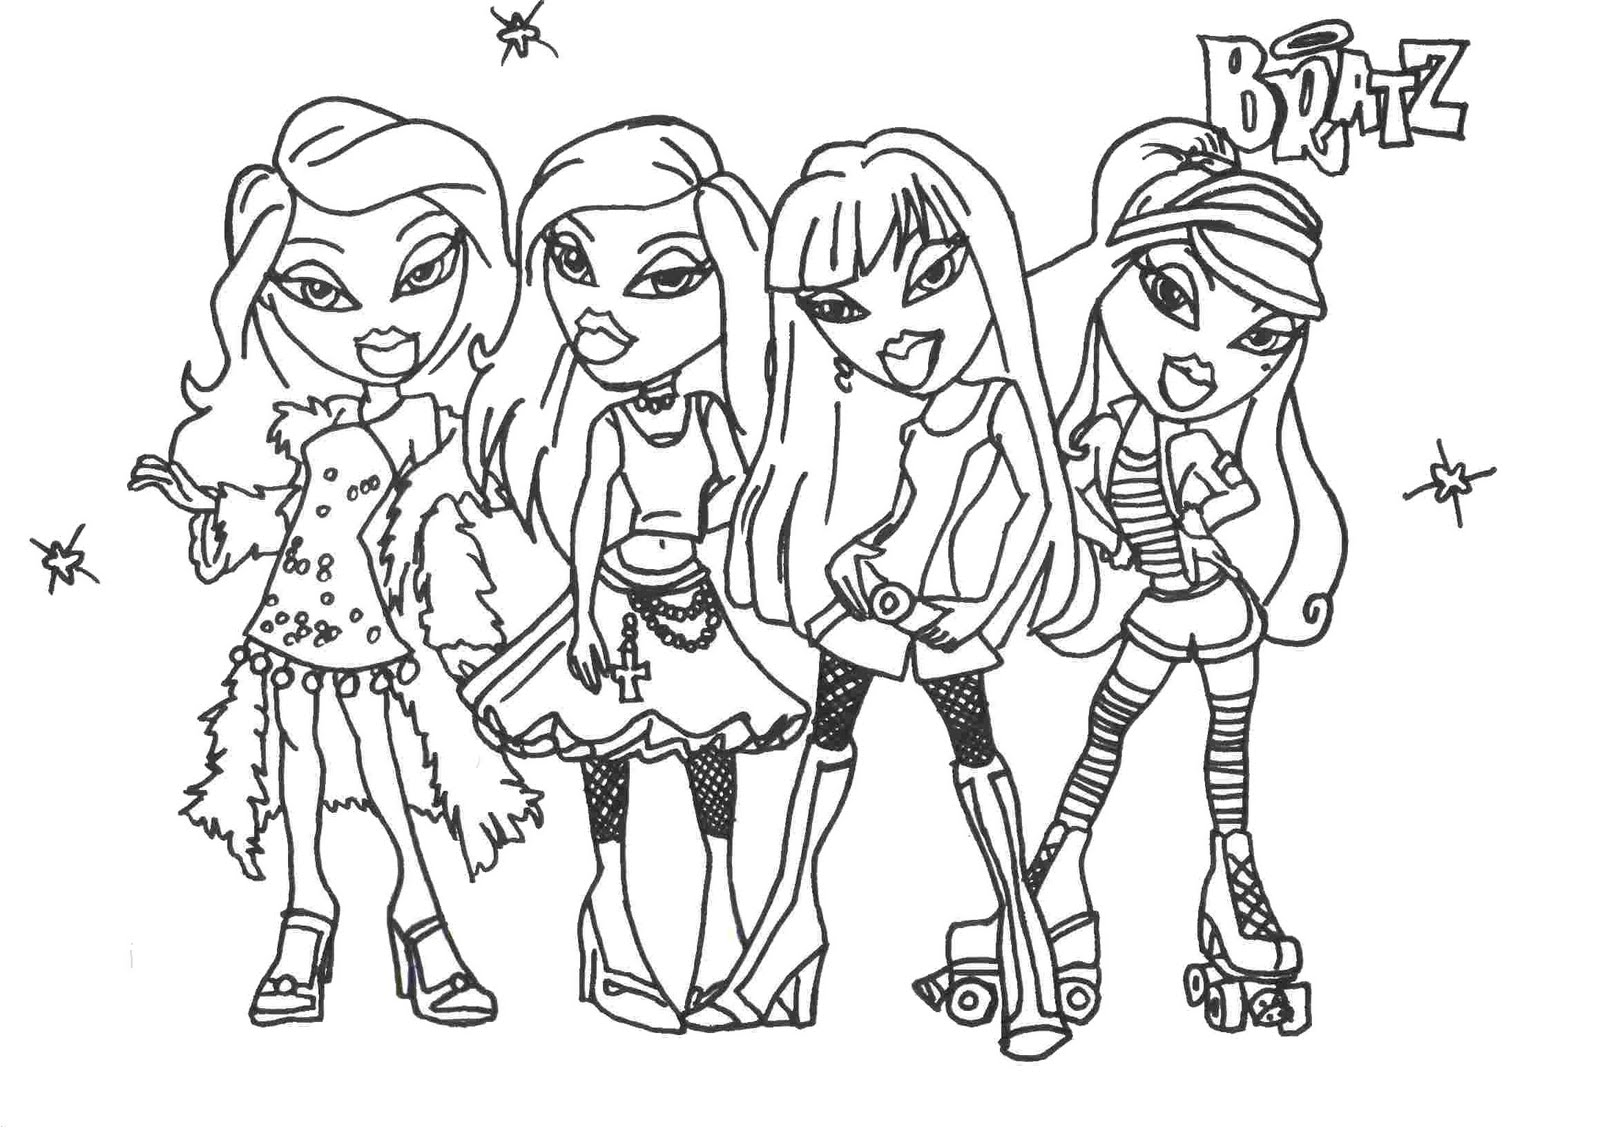 Coloring Pages Bratz Interesting Printable Bratz Coloring Pages  Kids Printable Coloring Pages